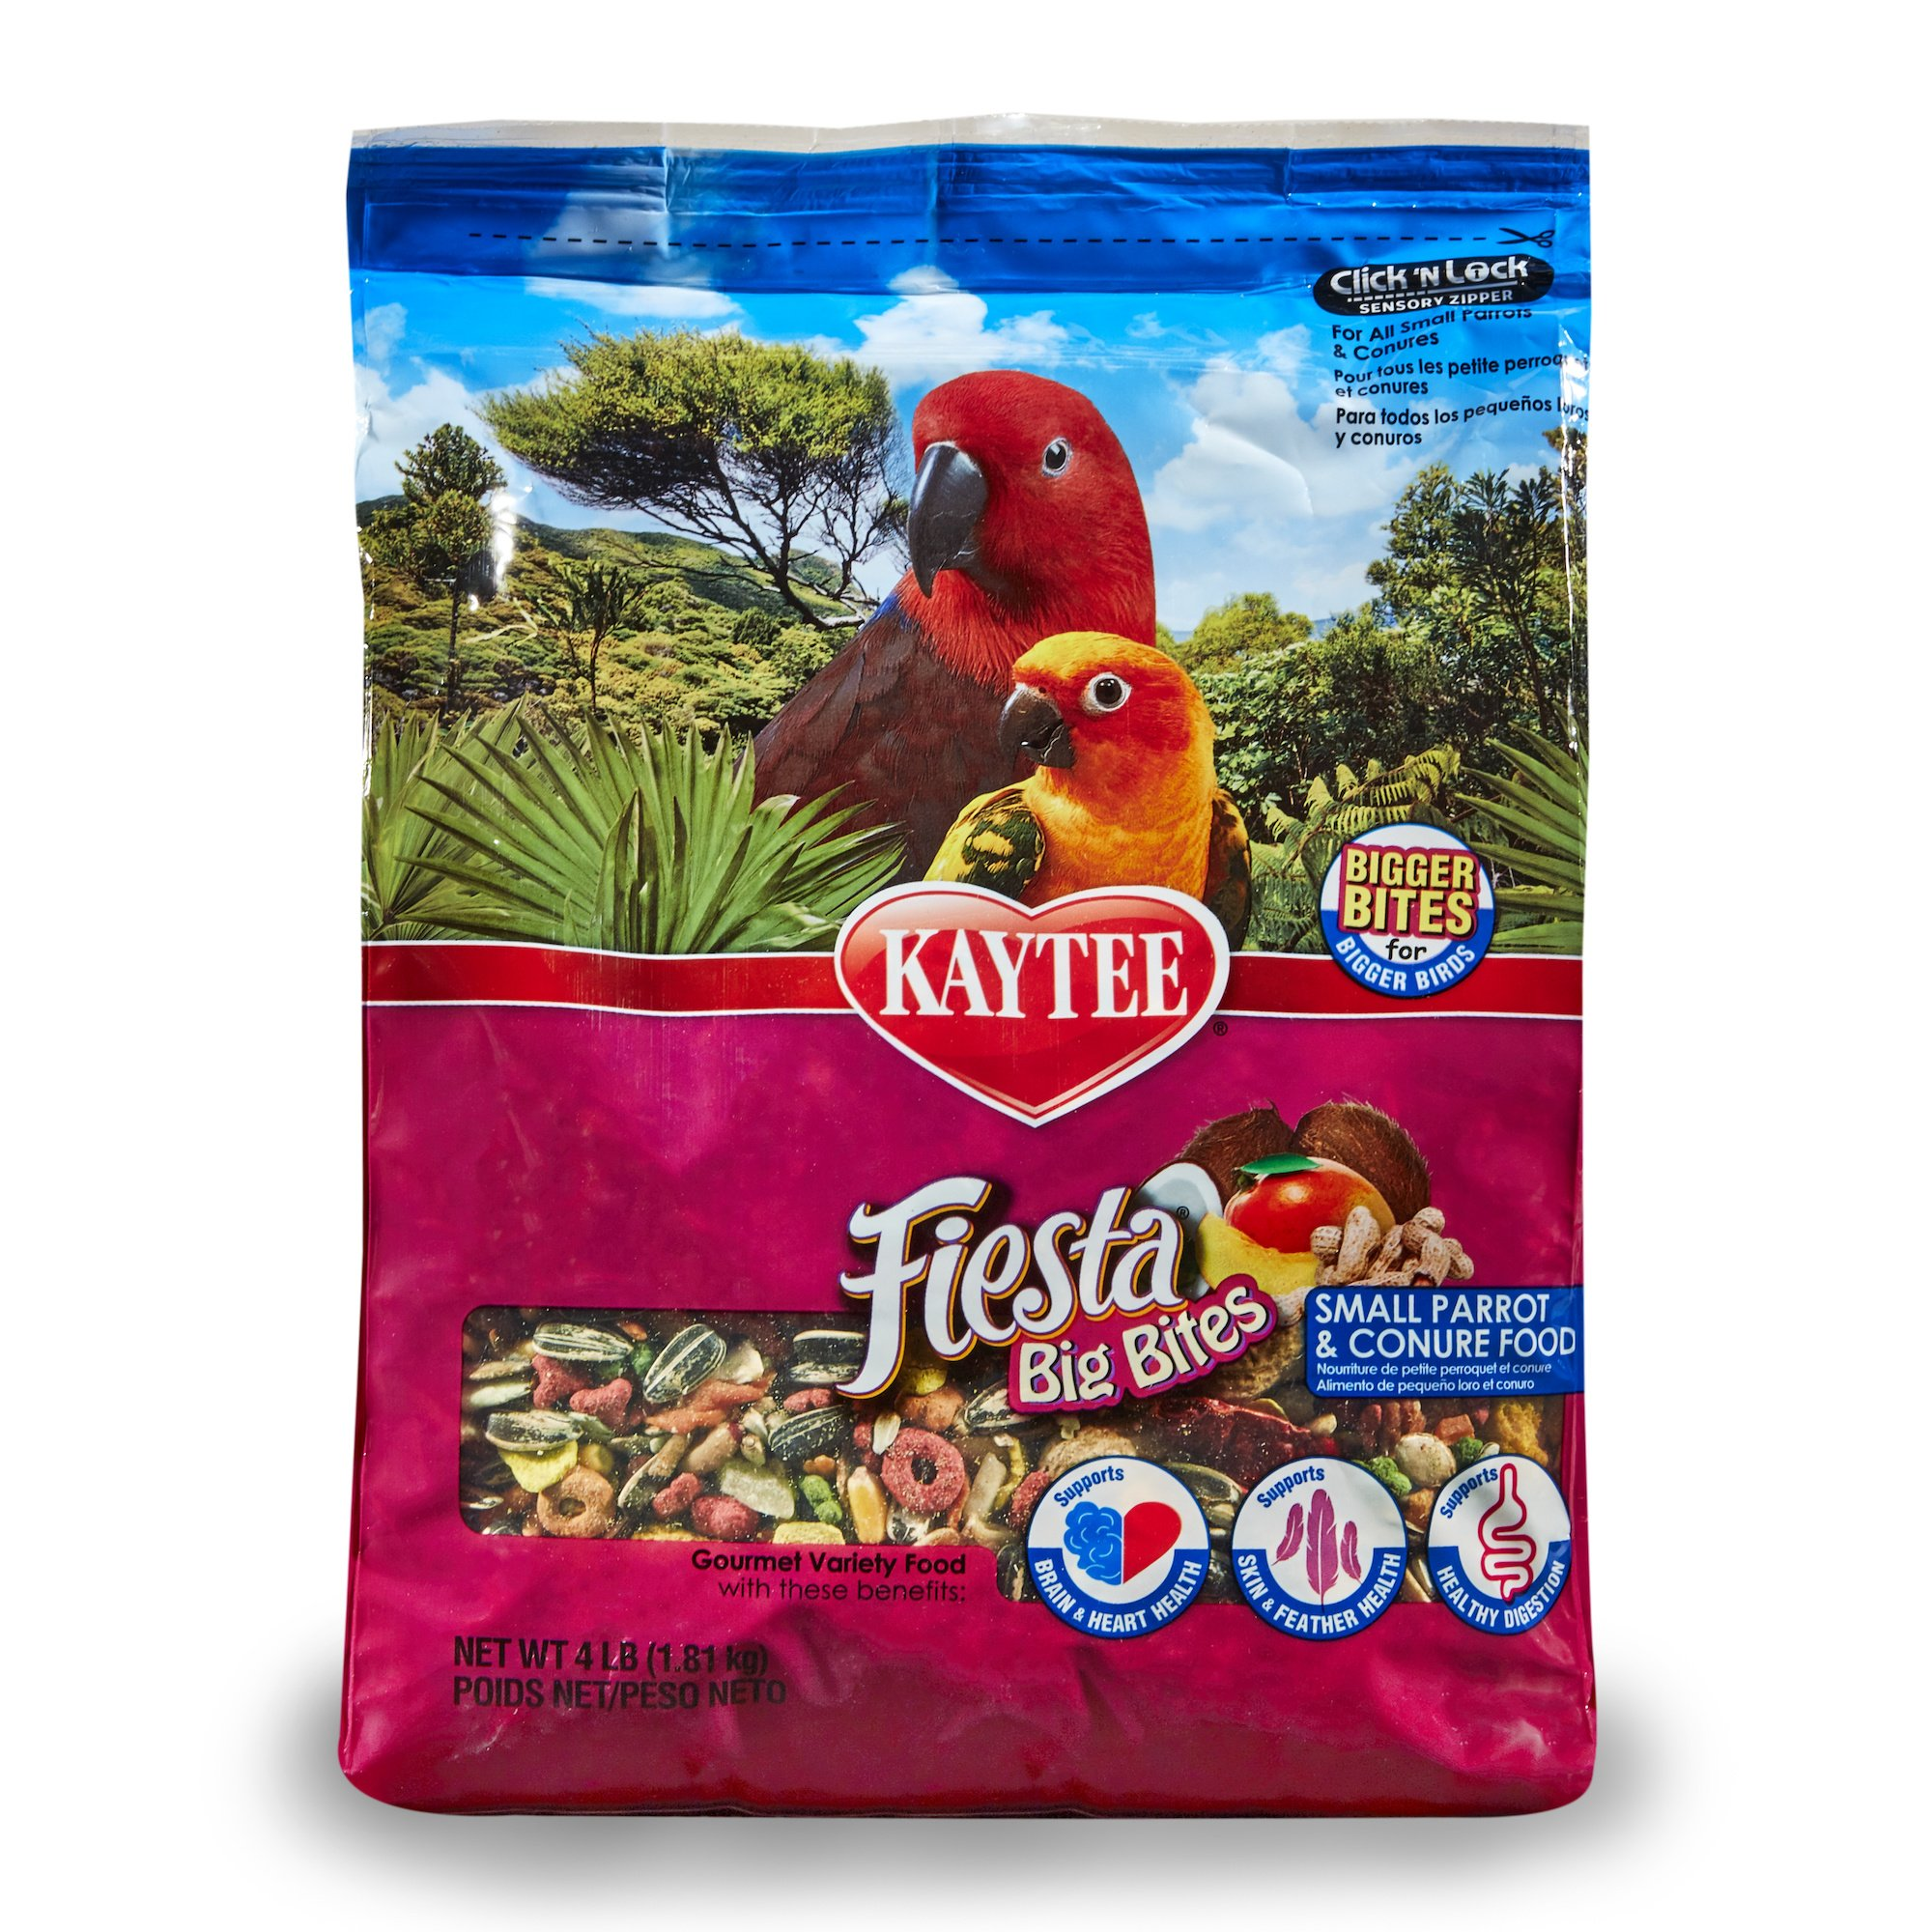 Kaytee Big Bites for Small Parrots and Conures, 4 Ib